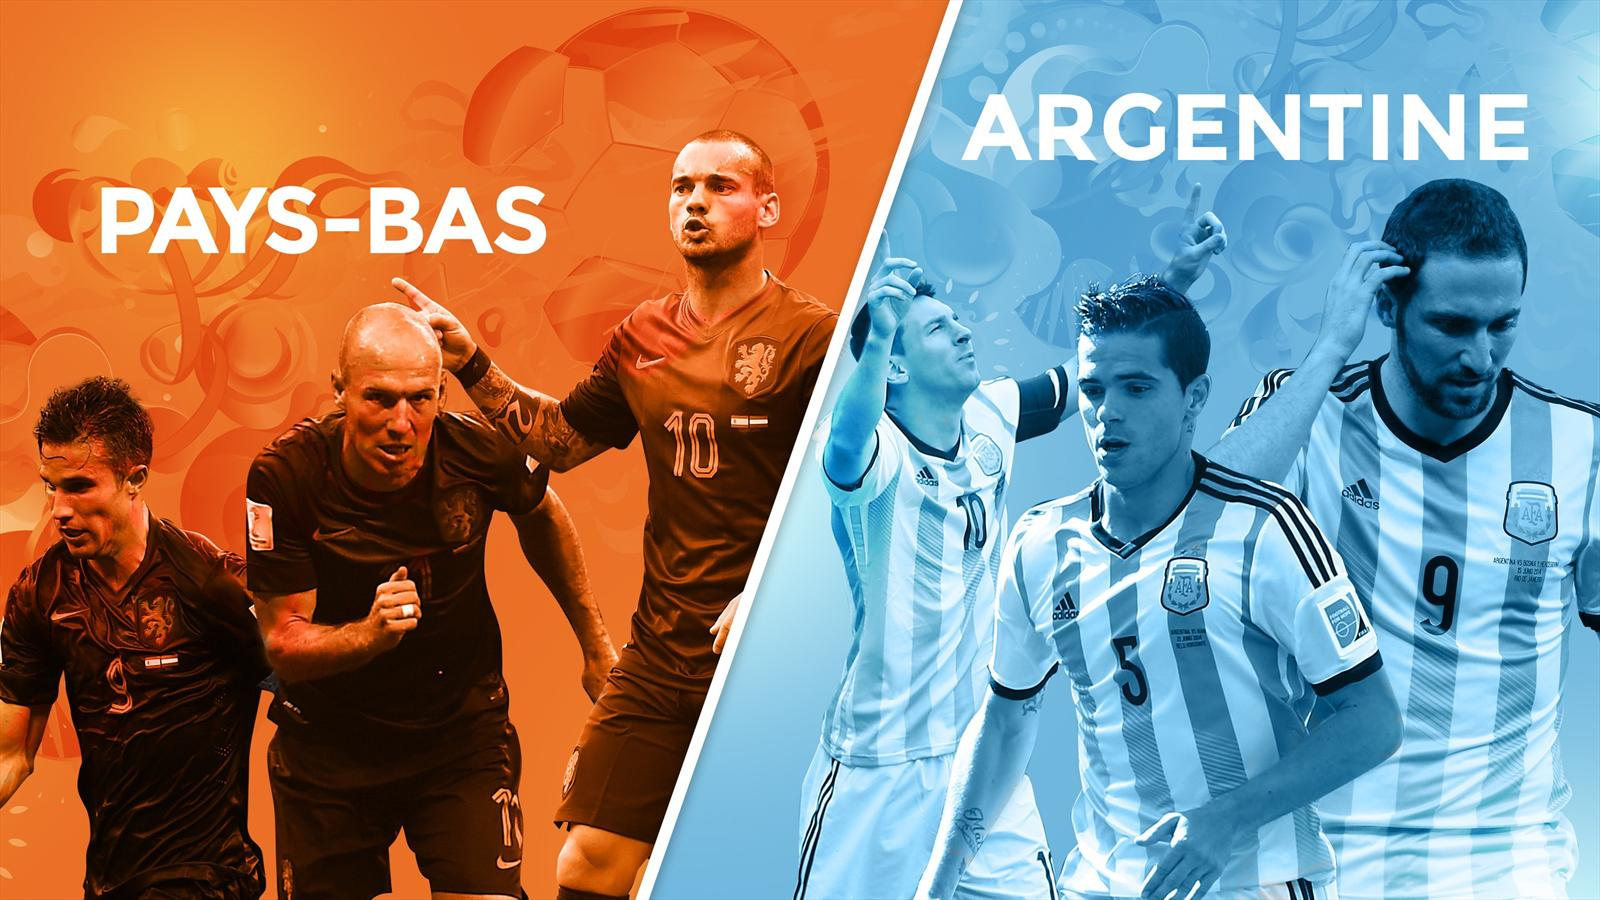 Match Argentine - Pays-Bas en direct live streaming sur TF1 et beIN Sport 1HD